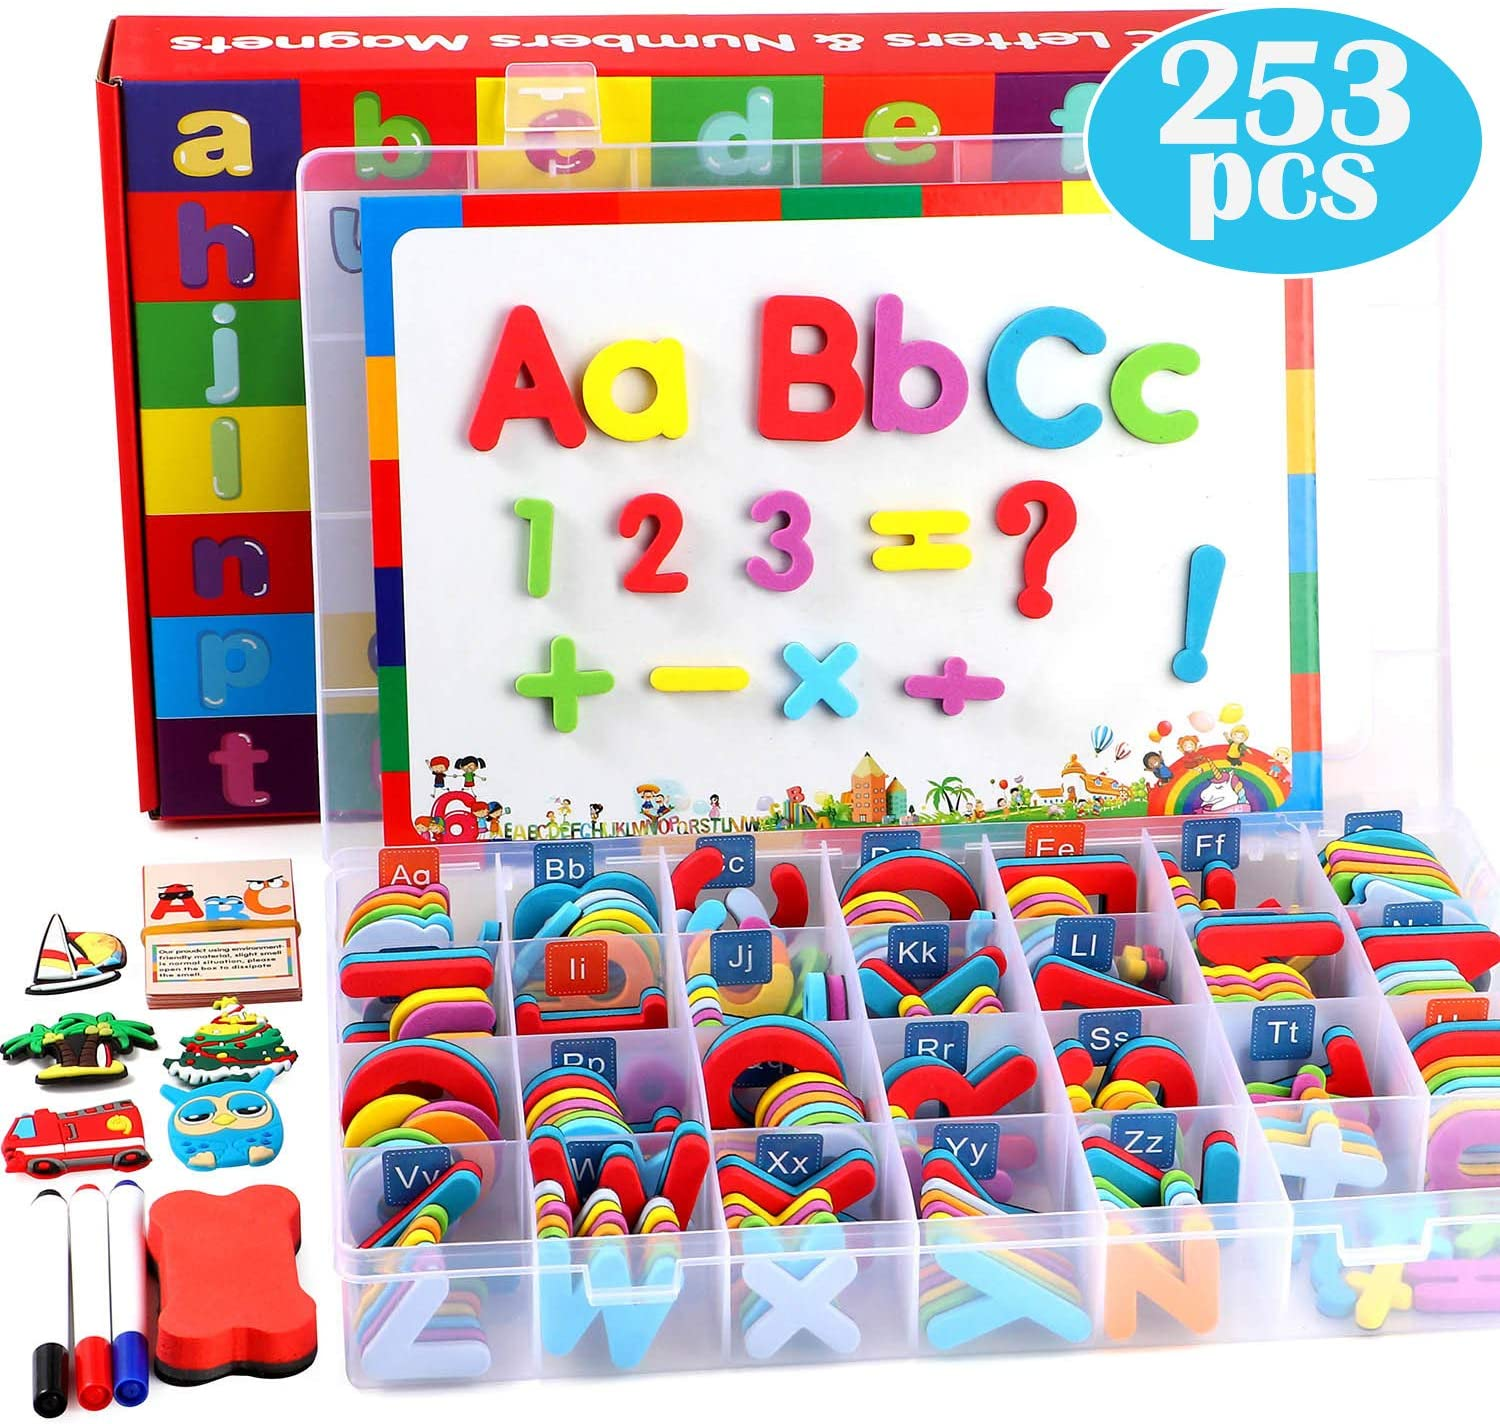 253 PCS Magnetic Letters Numbers with Magnetic Board and Storage Box Foam Alphabet ABC Refrigerator Magnets Educational Toys for Kids Children Toddlers: Furniture & Decor